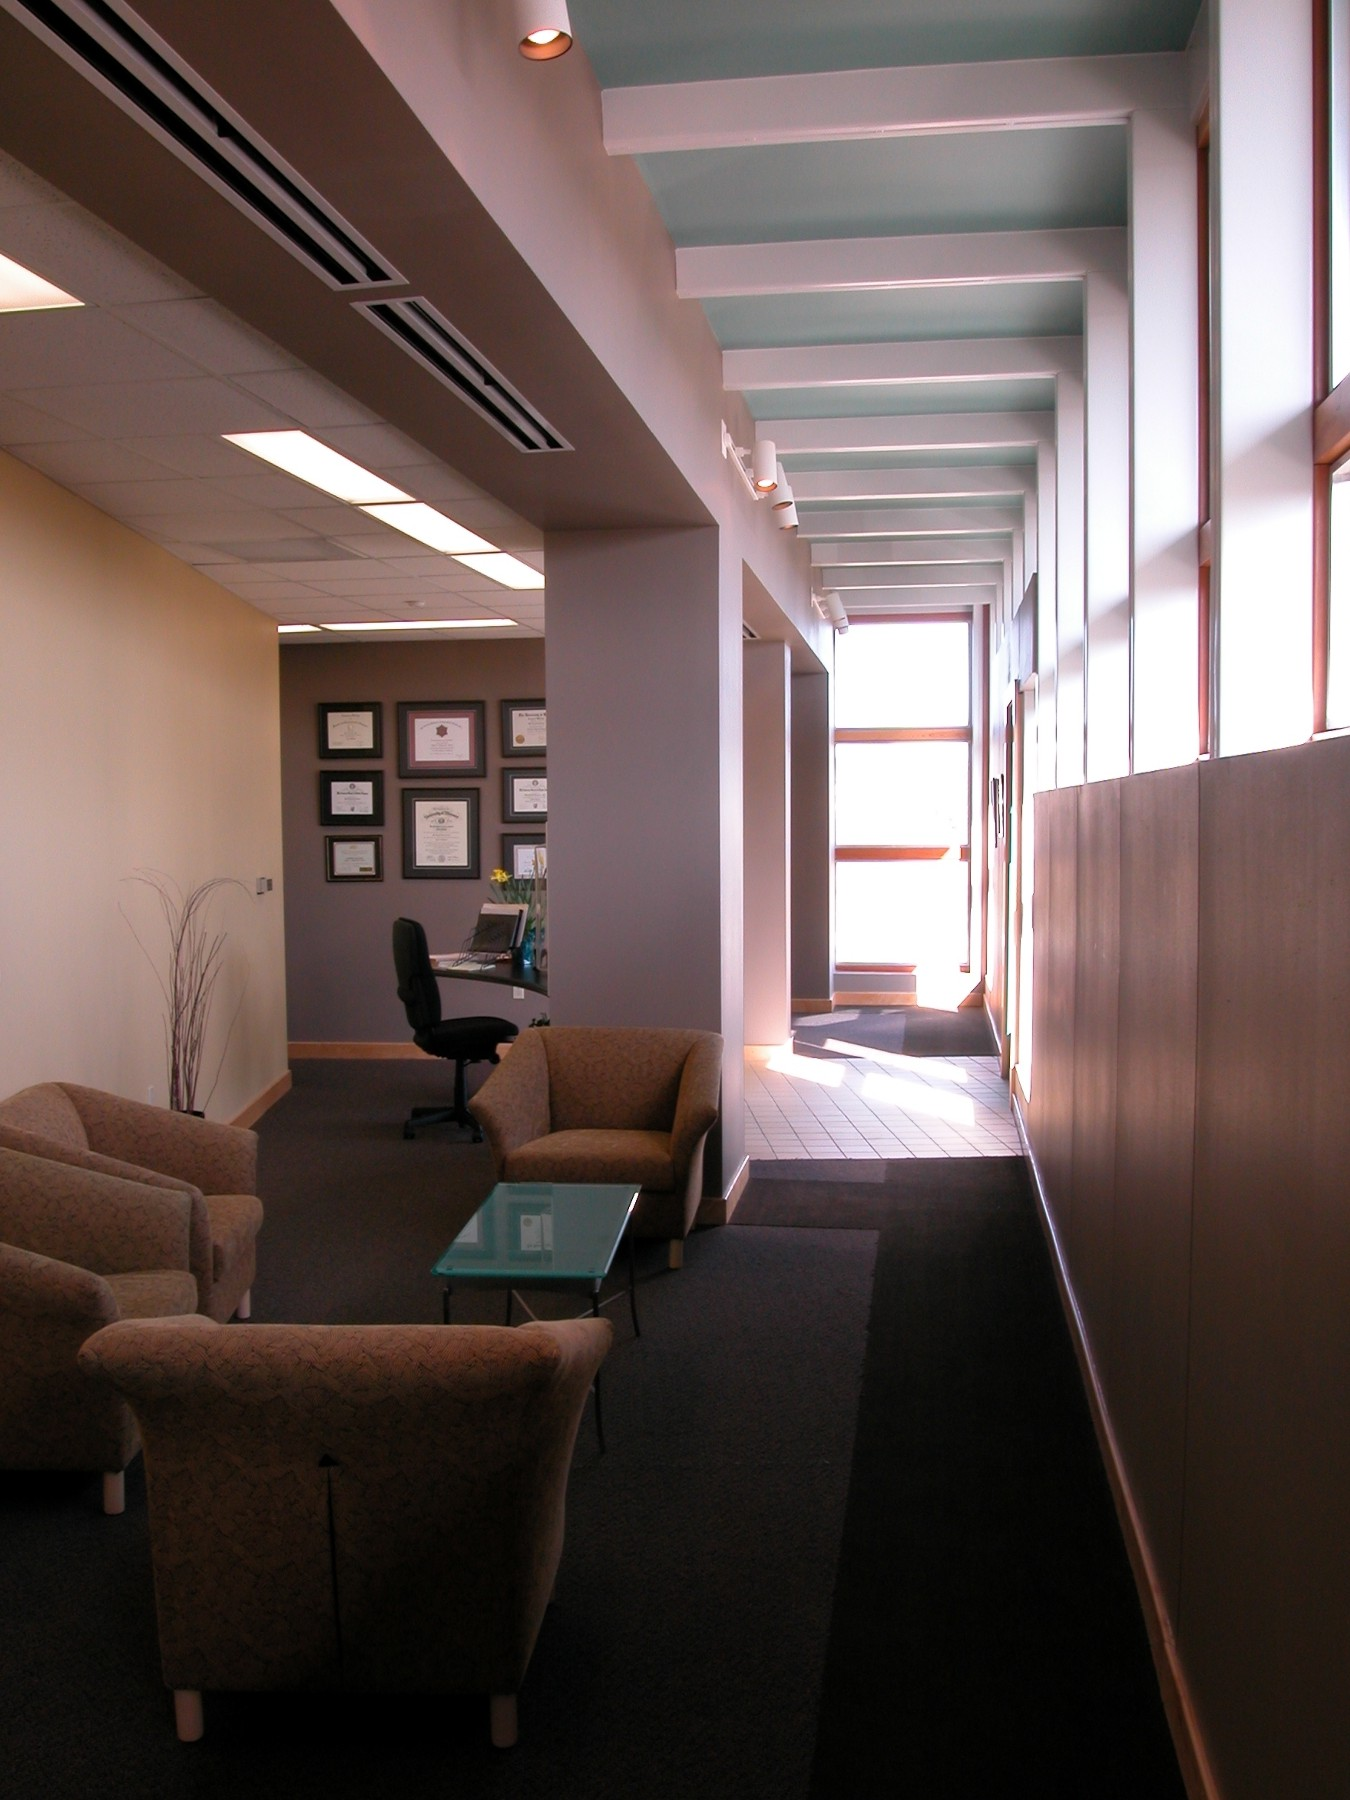 gouverne building interior-waiting.jpg